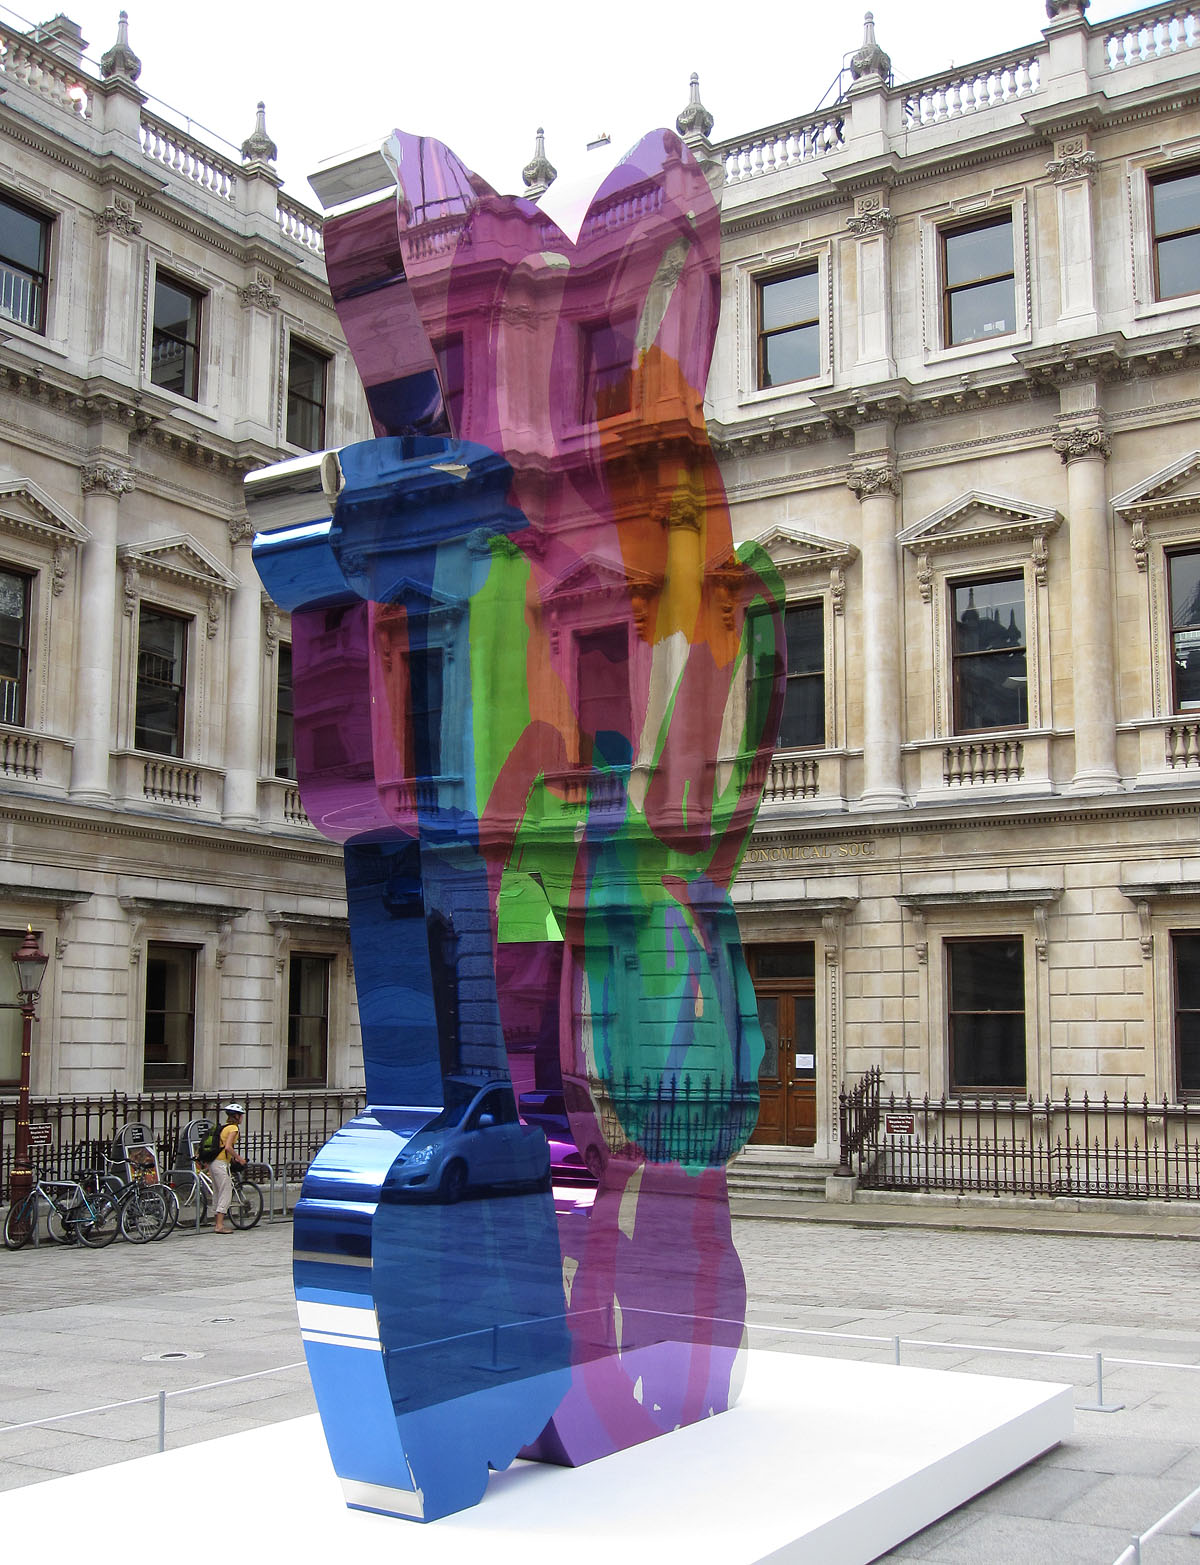 Coloring book by jeff koons - Coloring Book By Jeff Koons Claims To Be Bronze In The Courtyard Of